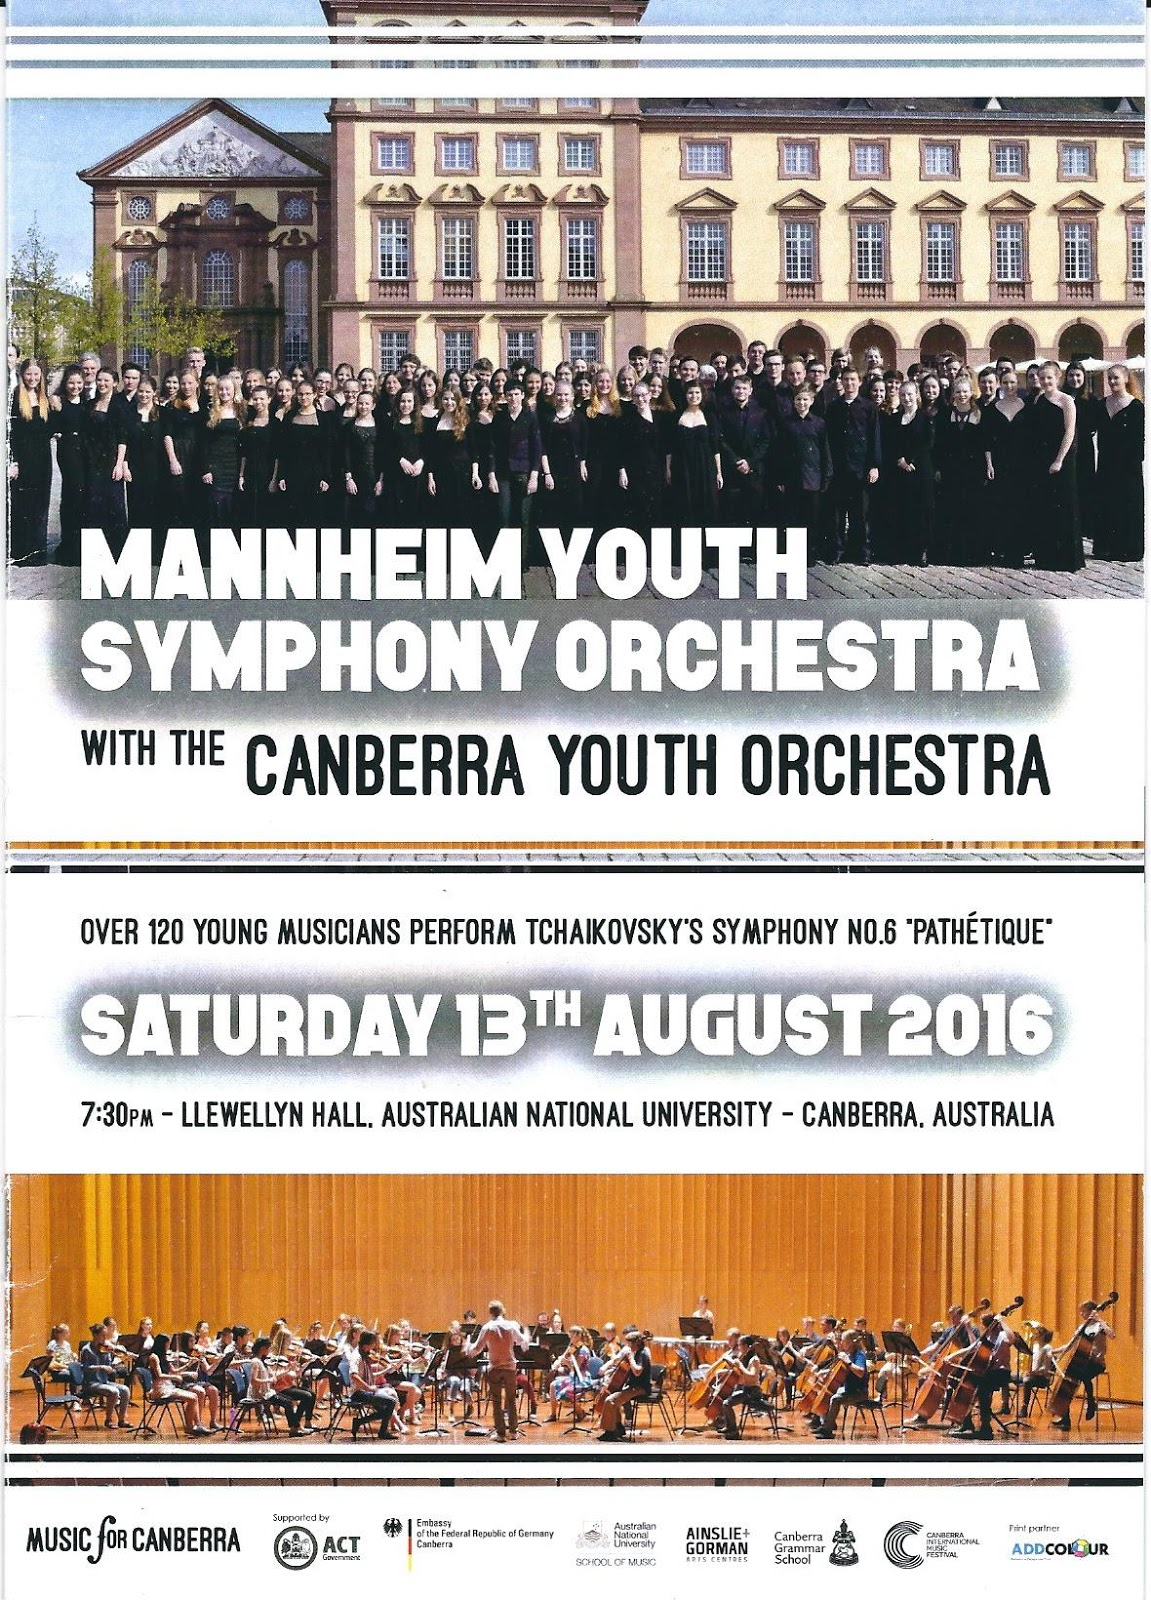 Baton Mannheim canberra critics circle mannheim youth symphony orchestra with the